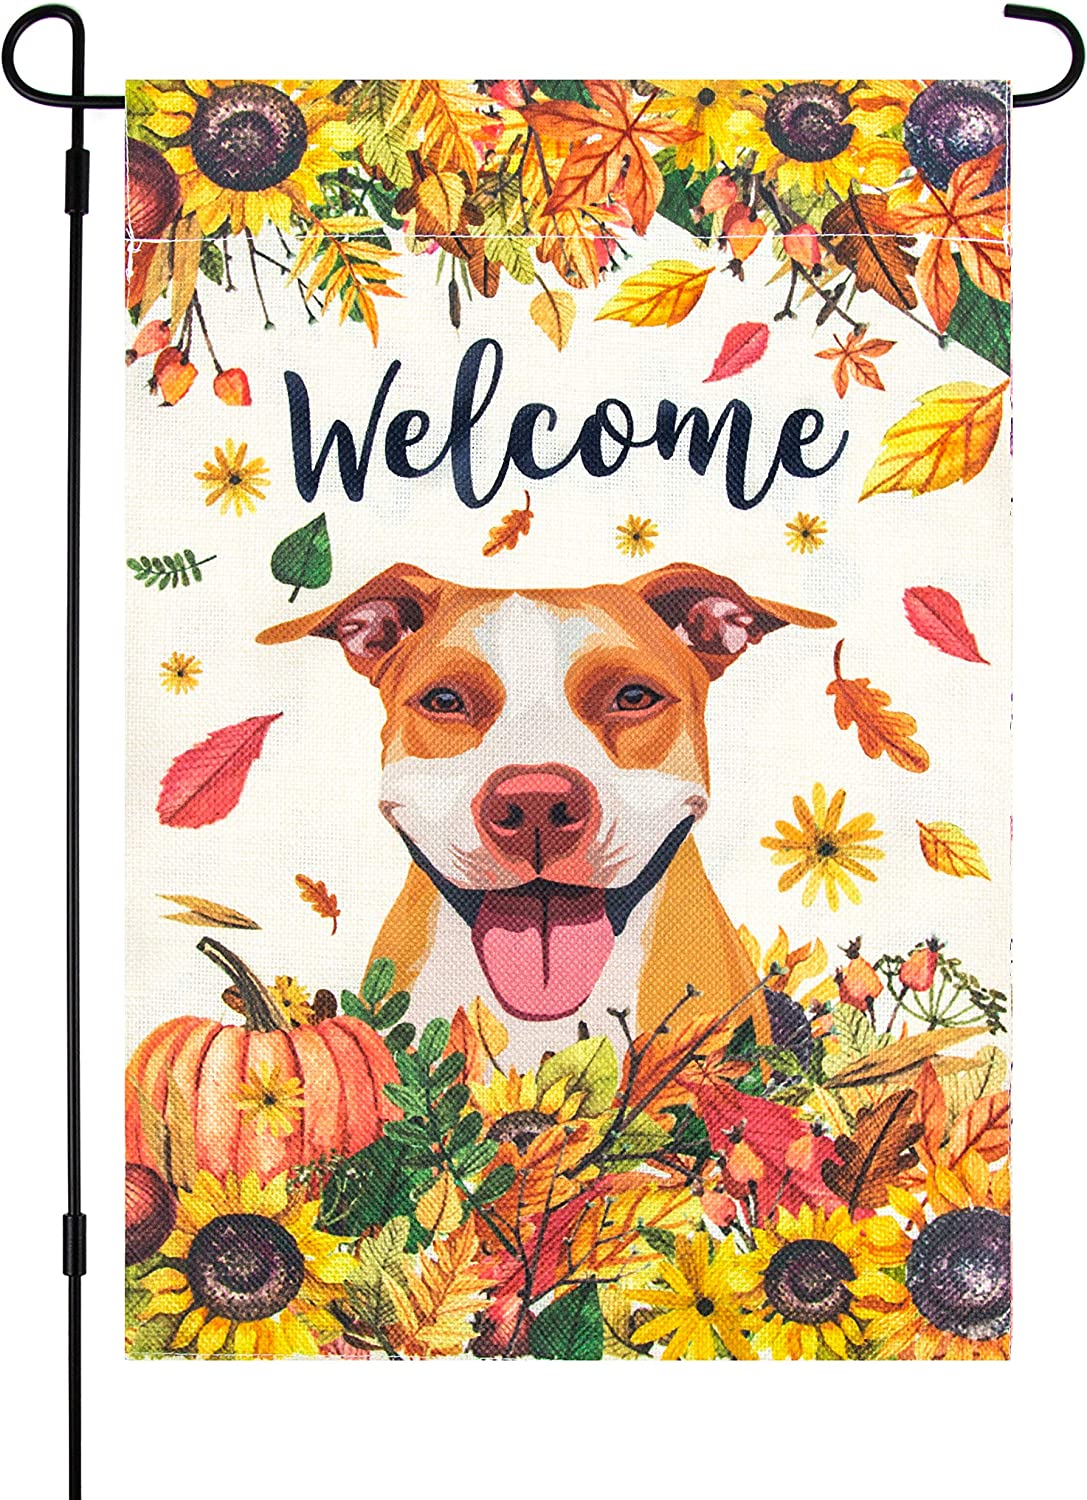 MARMIE Fall Garden Flag with Pitbull Dog, 12 x 18 Inch, Welcome, Brown American Pit Bull Terrier, Staffordshire Bull Terrier, Autumn, Halloween, October, Sunflowers, Thanksgiving Decor, Yard Flag